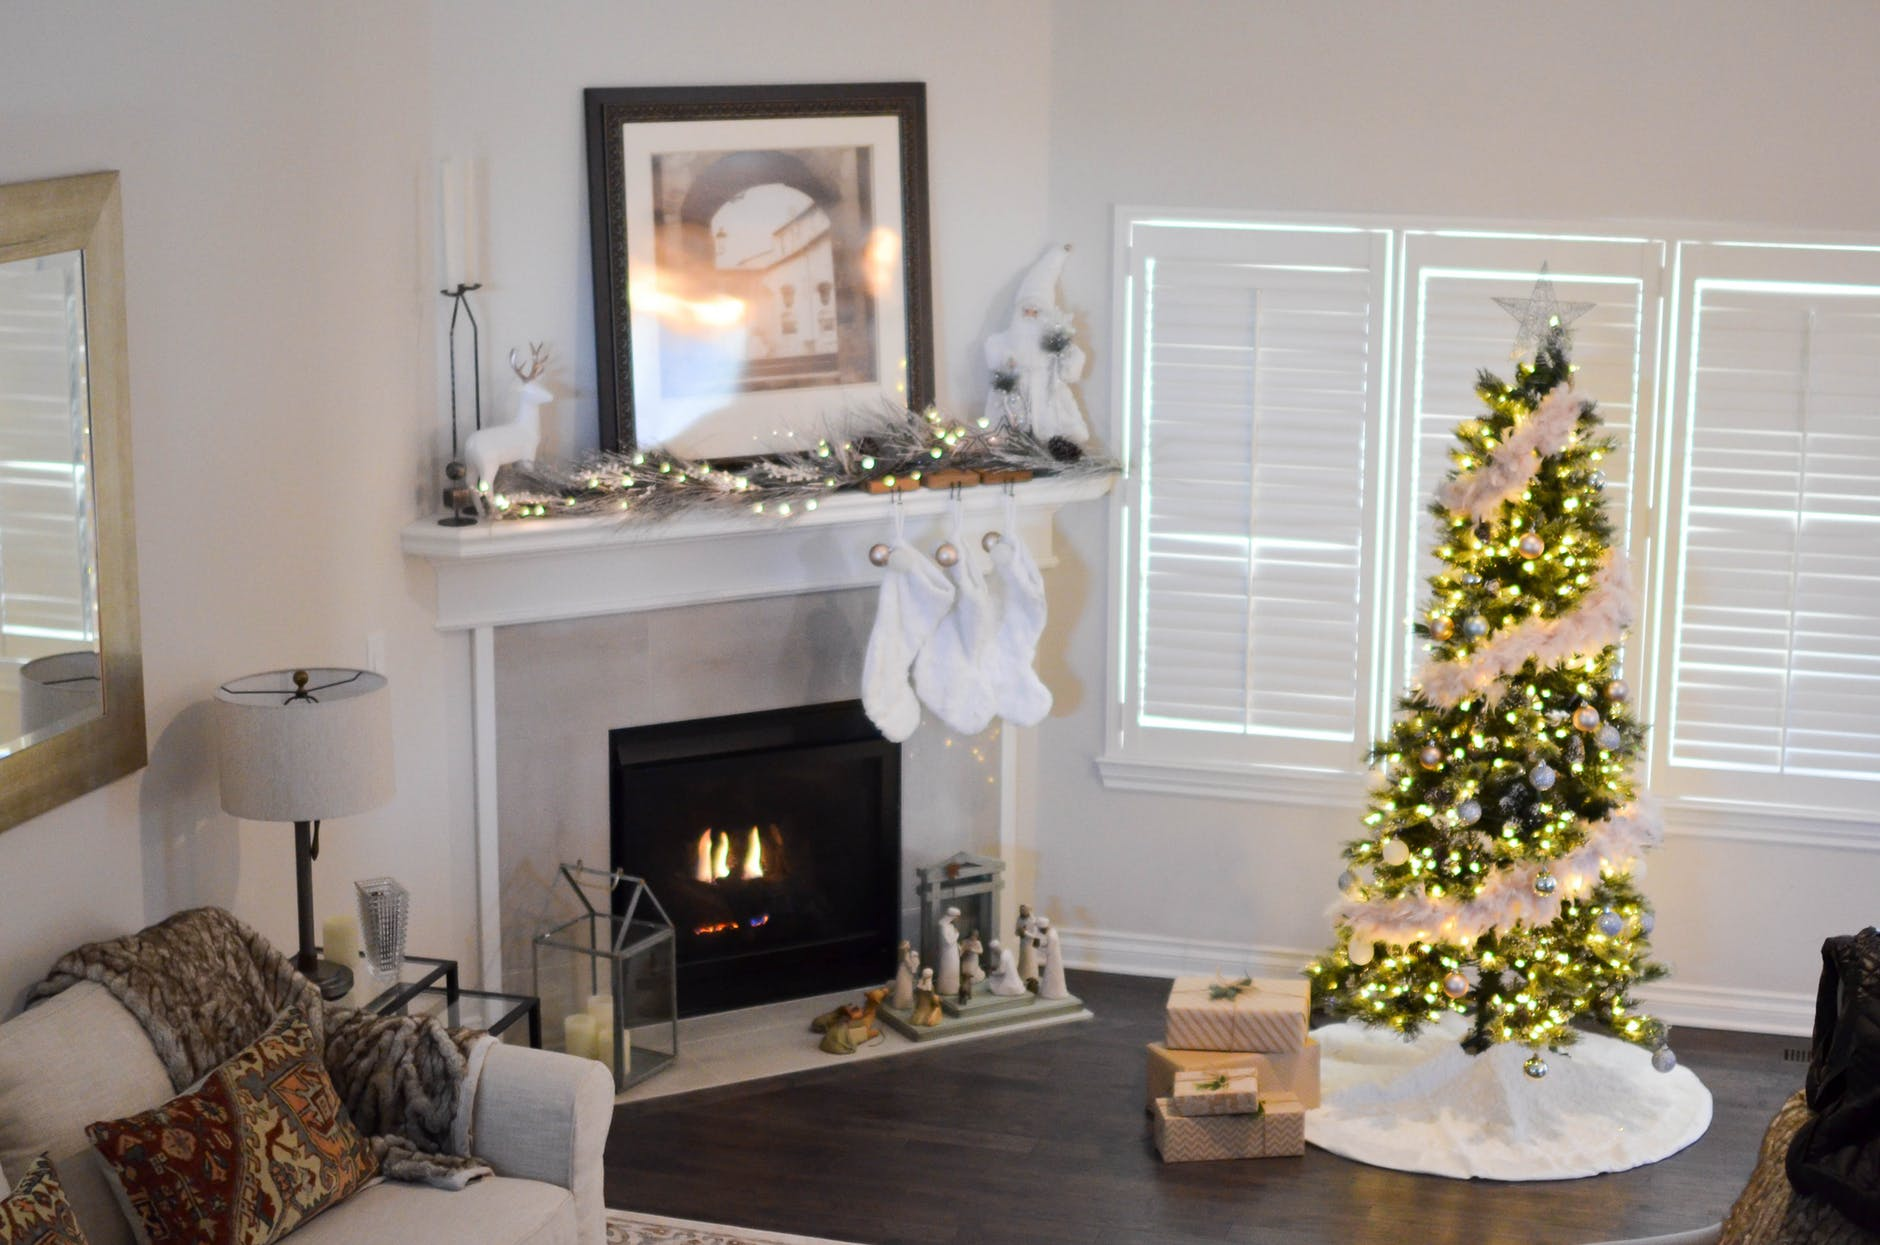 green and white pre lit pine tree near fireplace inside well lit room